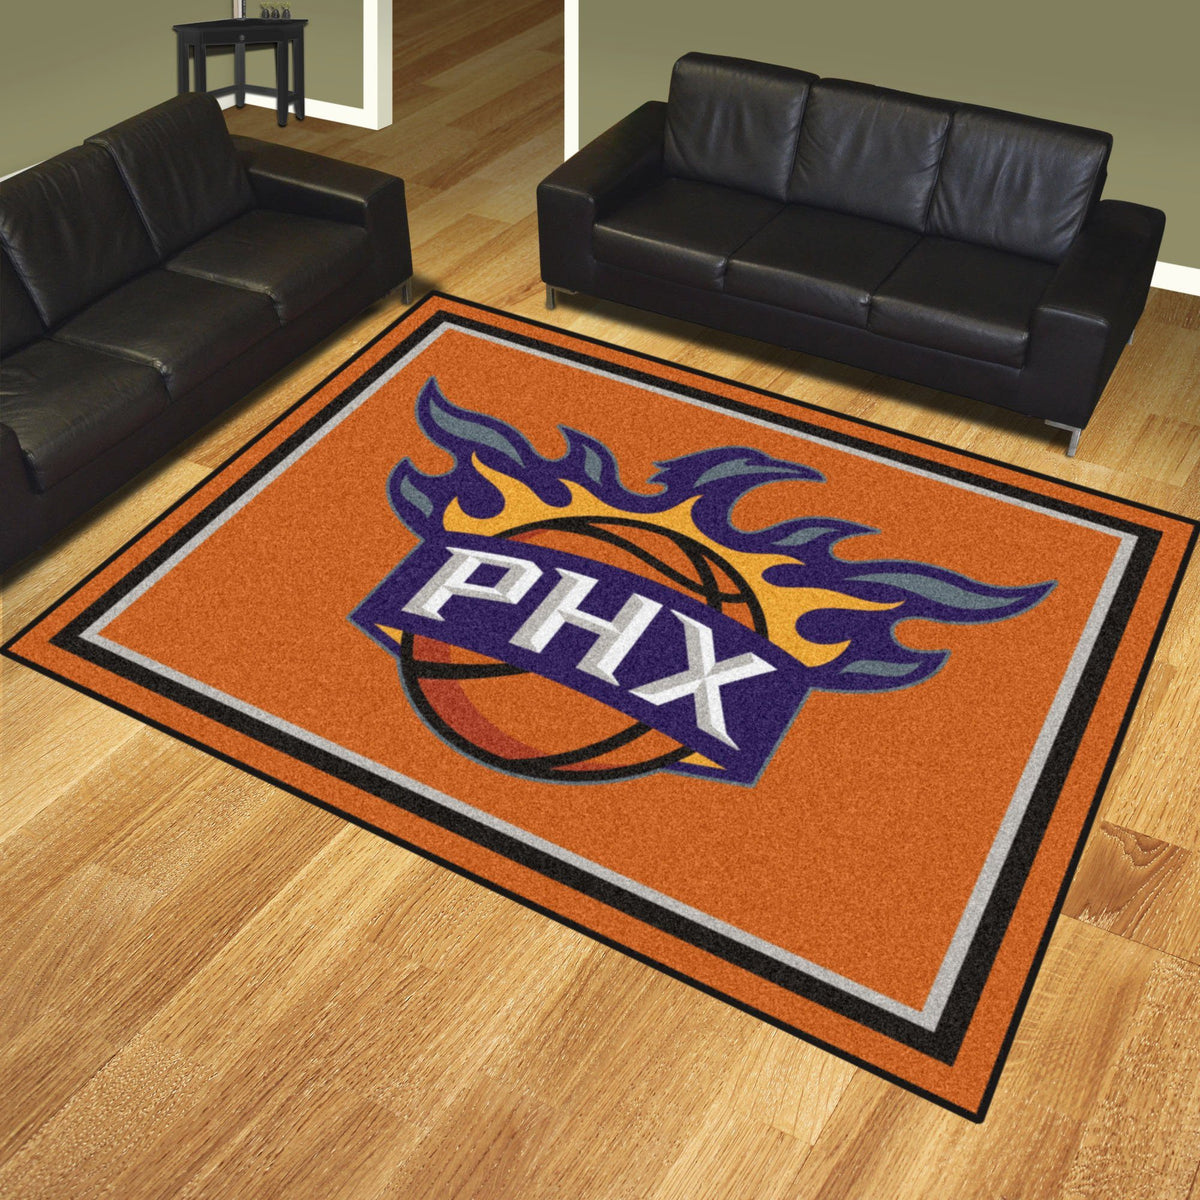 NBA - 8' x 10' Rug NBA Mats, Plush Rugs, 8x10 Rug, NBA, Home Fan Mats Phoenix Suns